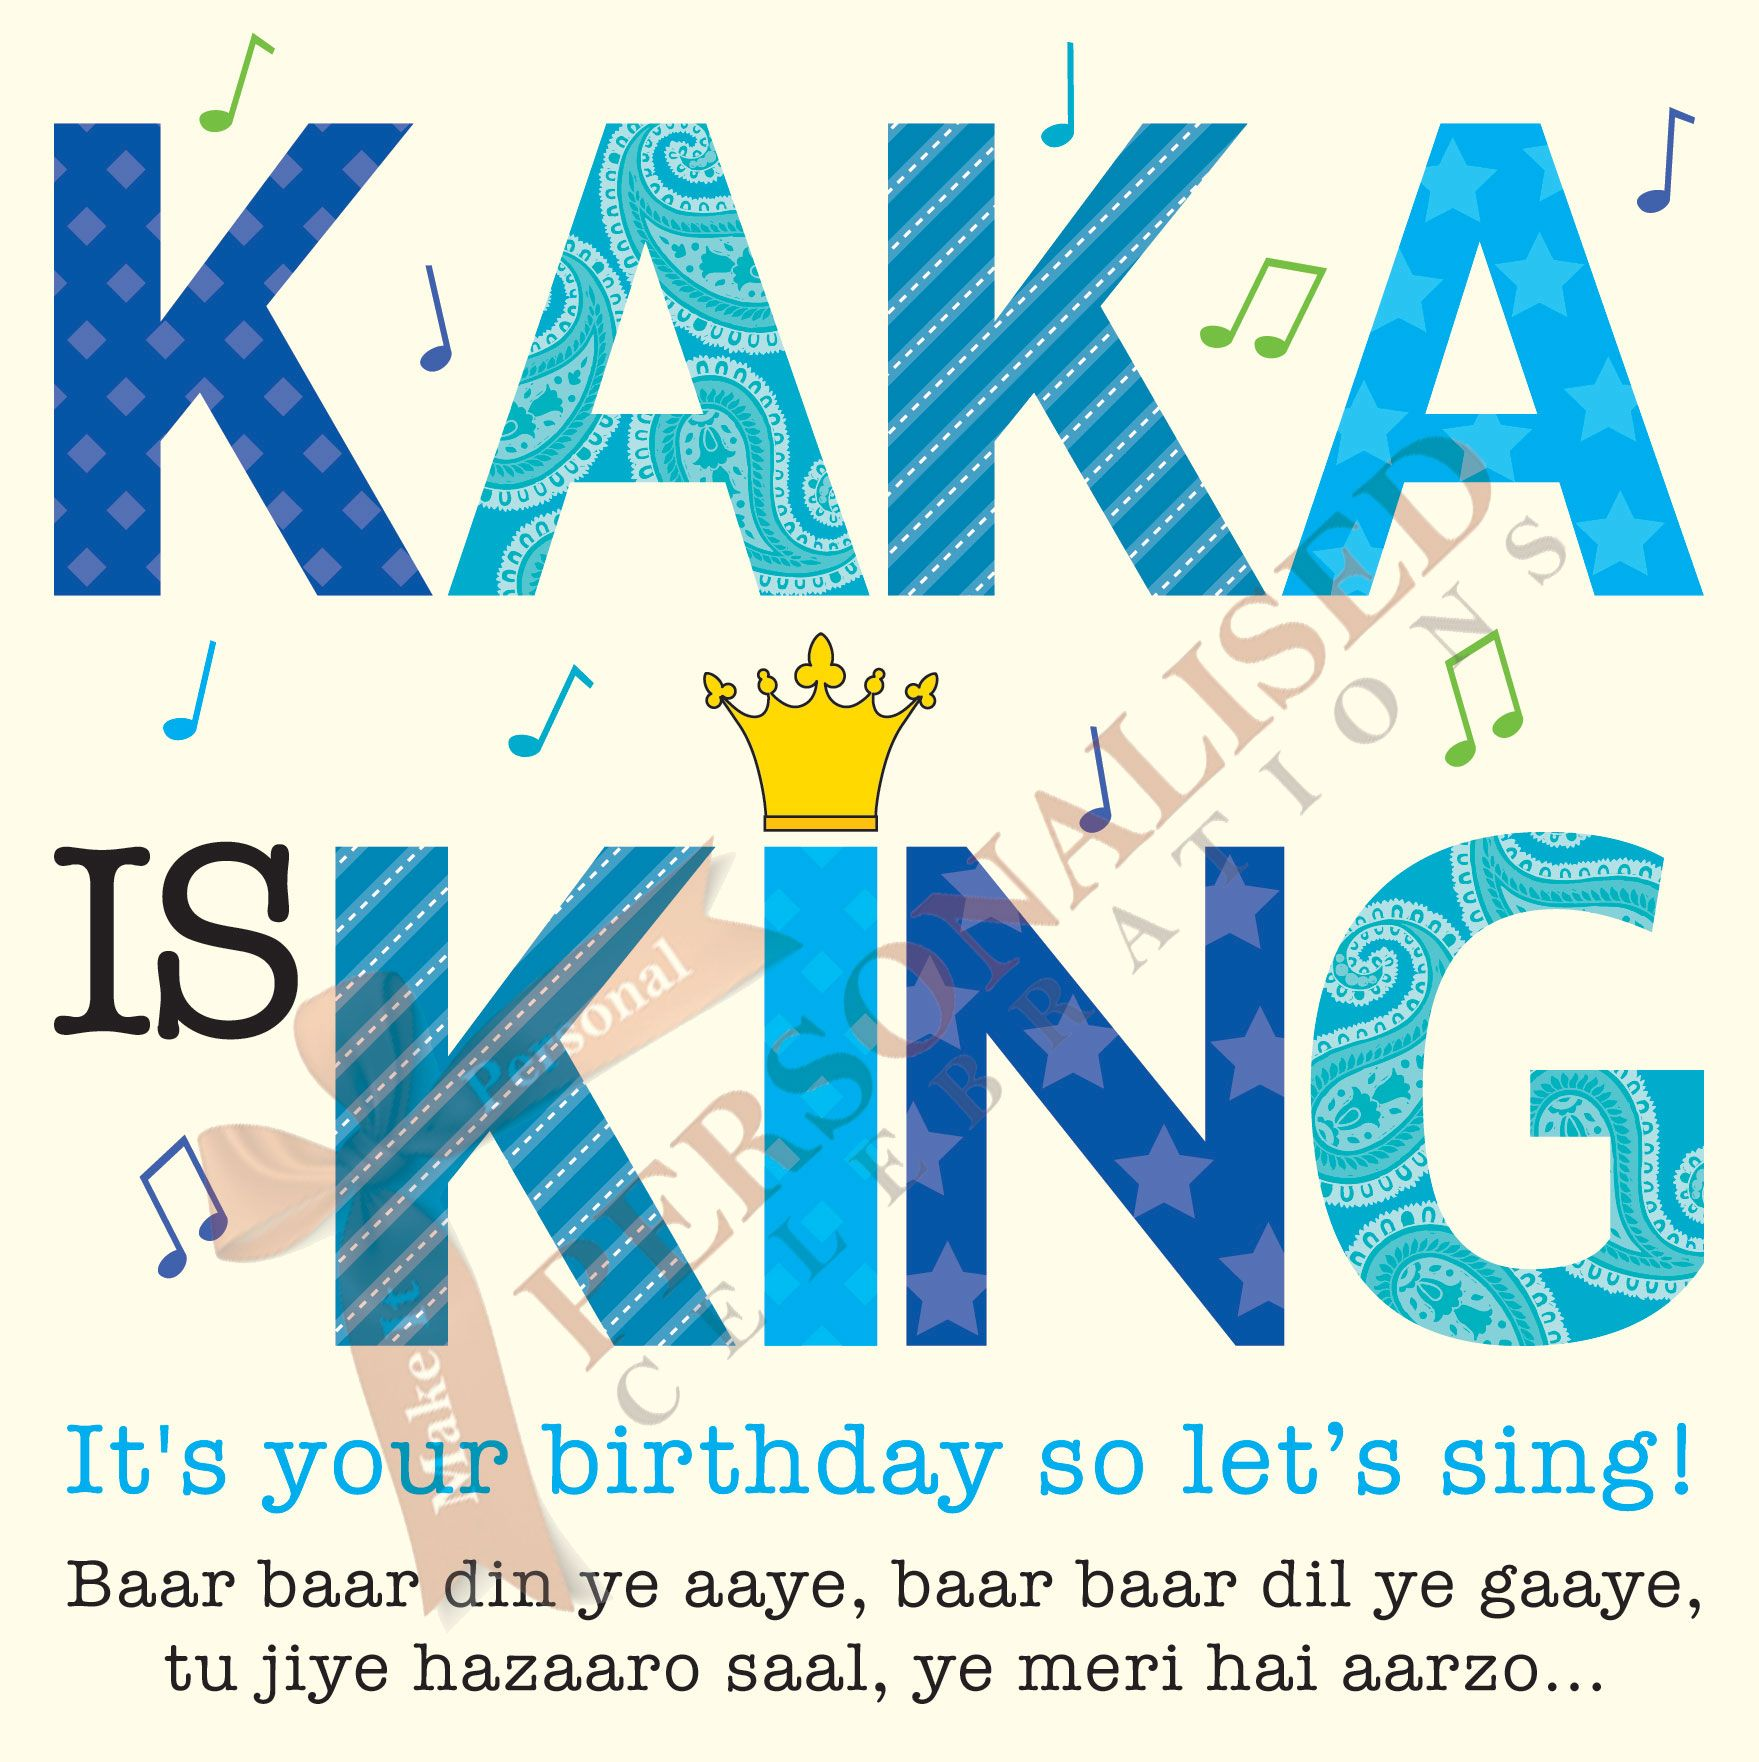 Kaka birthday card buy this card online only 199 at http asian greeting cards and multicultural greeting cards with a modern contempoary twist m4hsunfo Choice Image